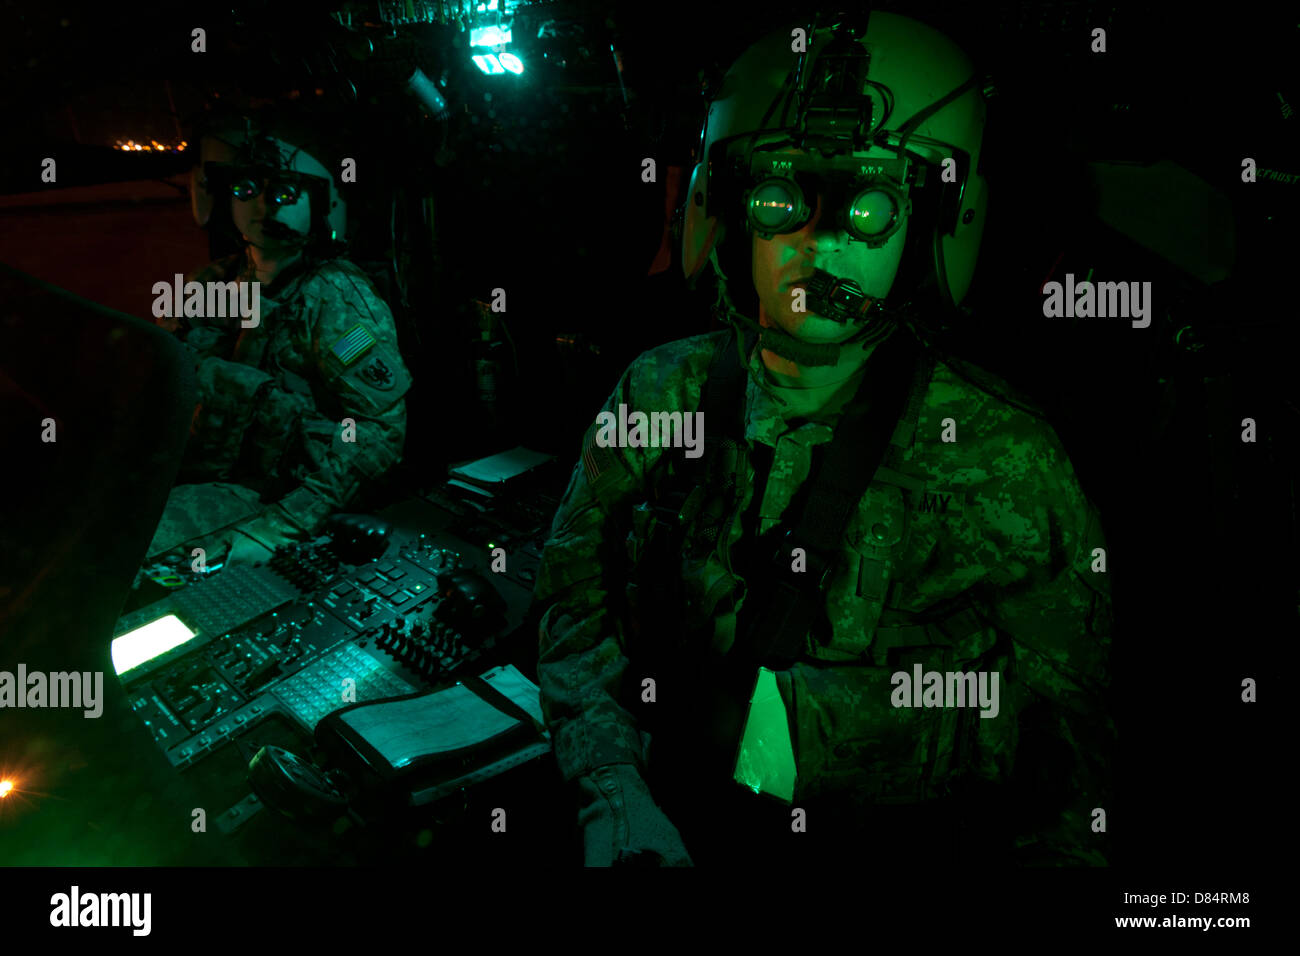 Photographic Print: Pilot Equipped with Night Vision